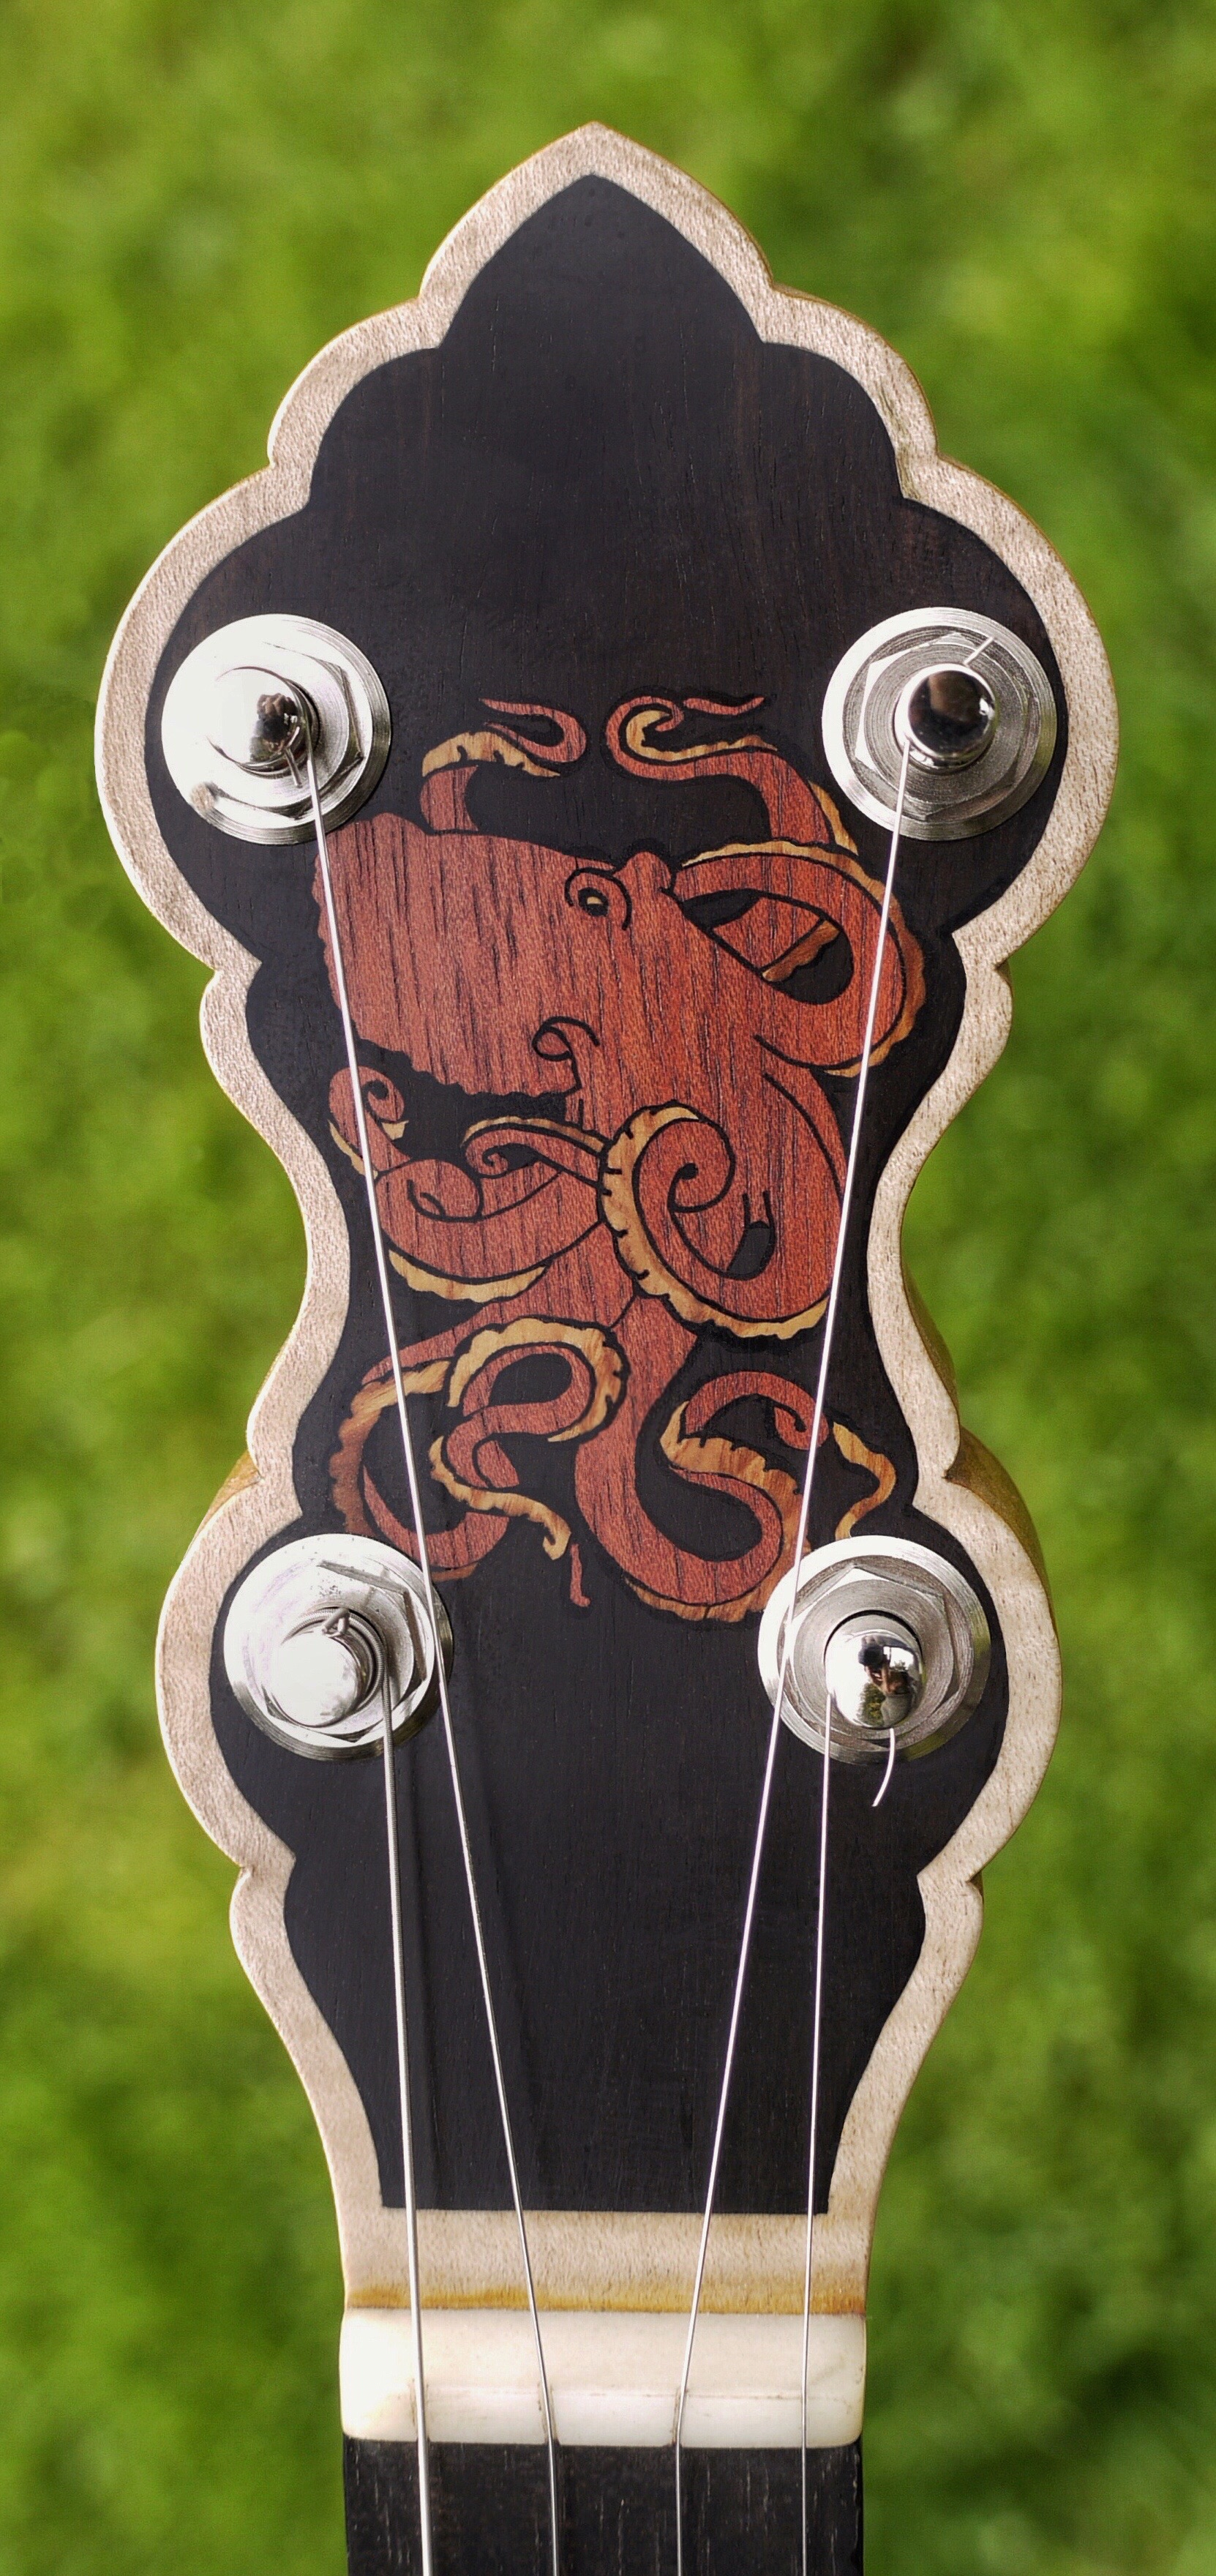 OCTOPUS BANJO INLAY